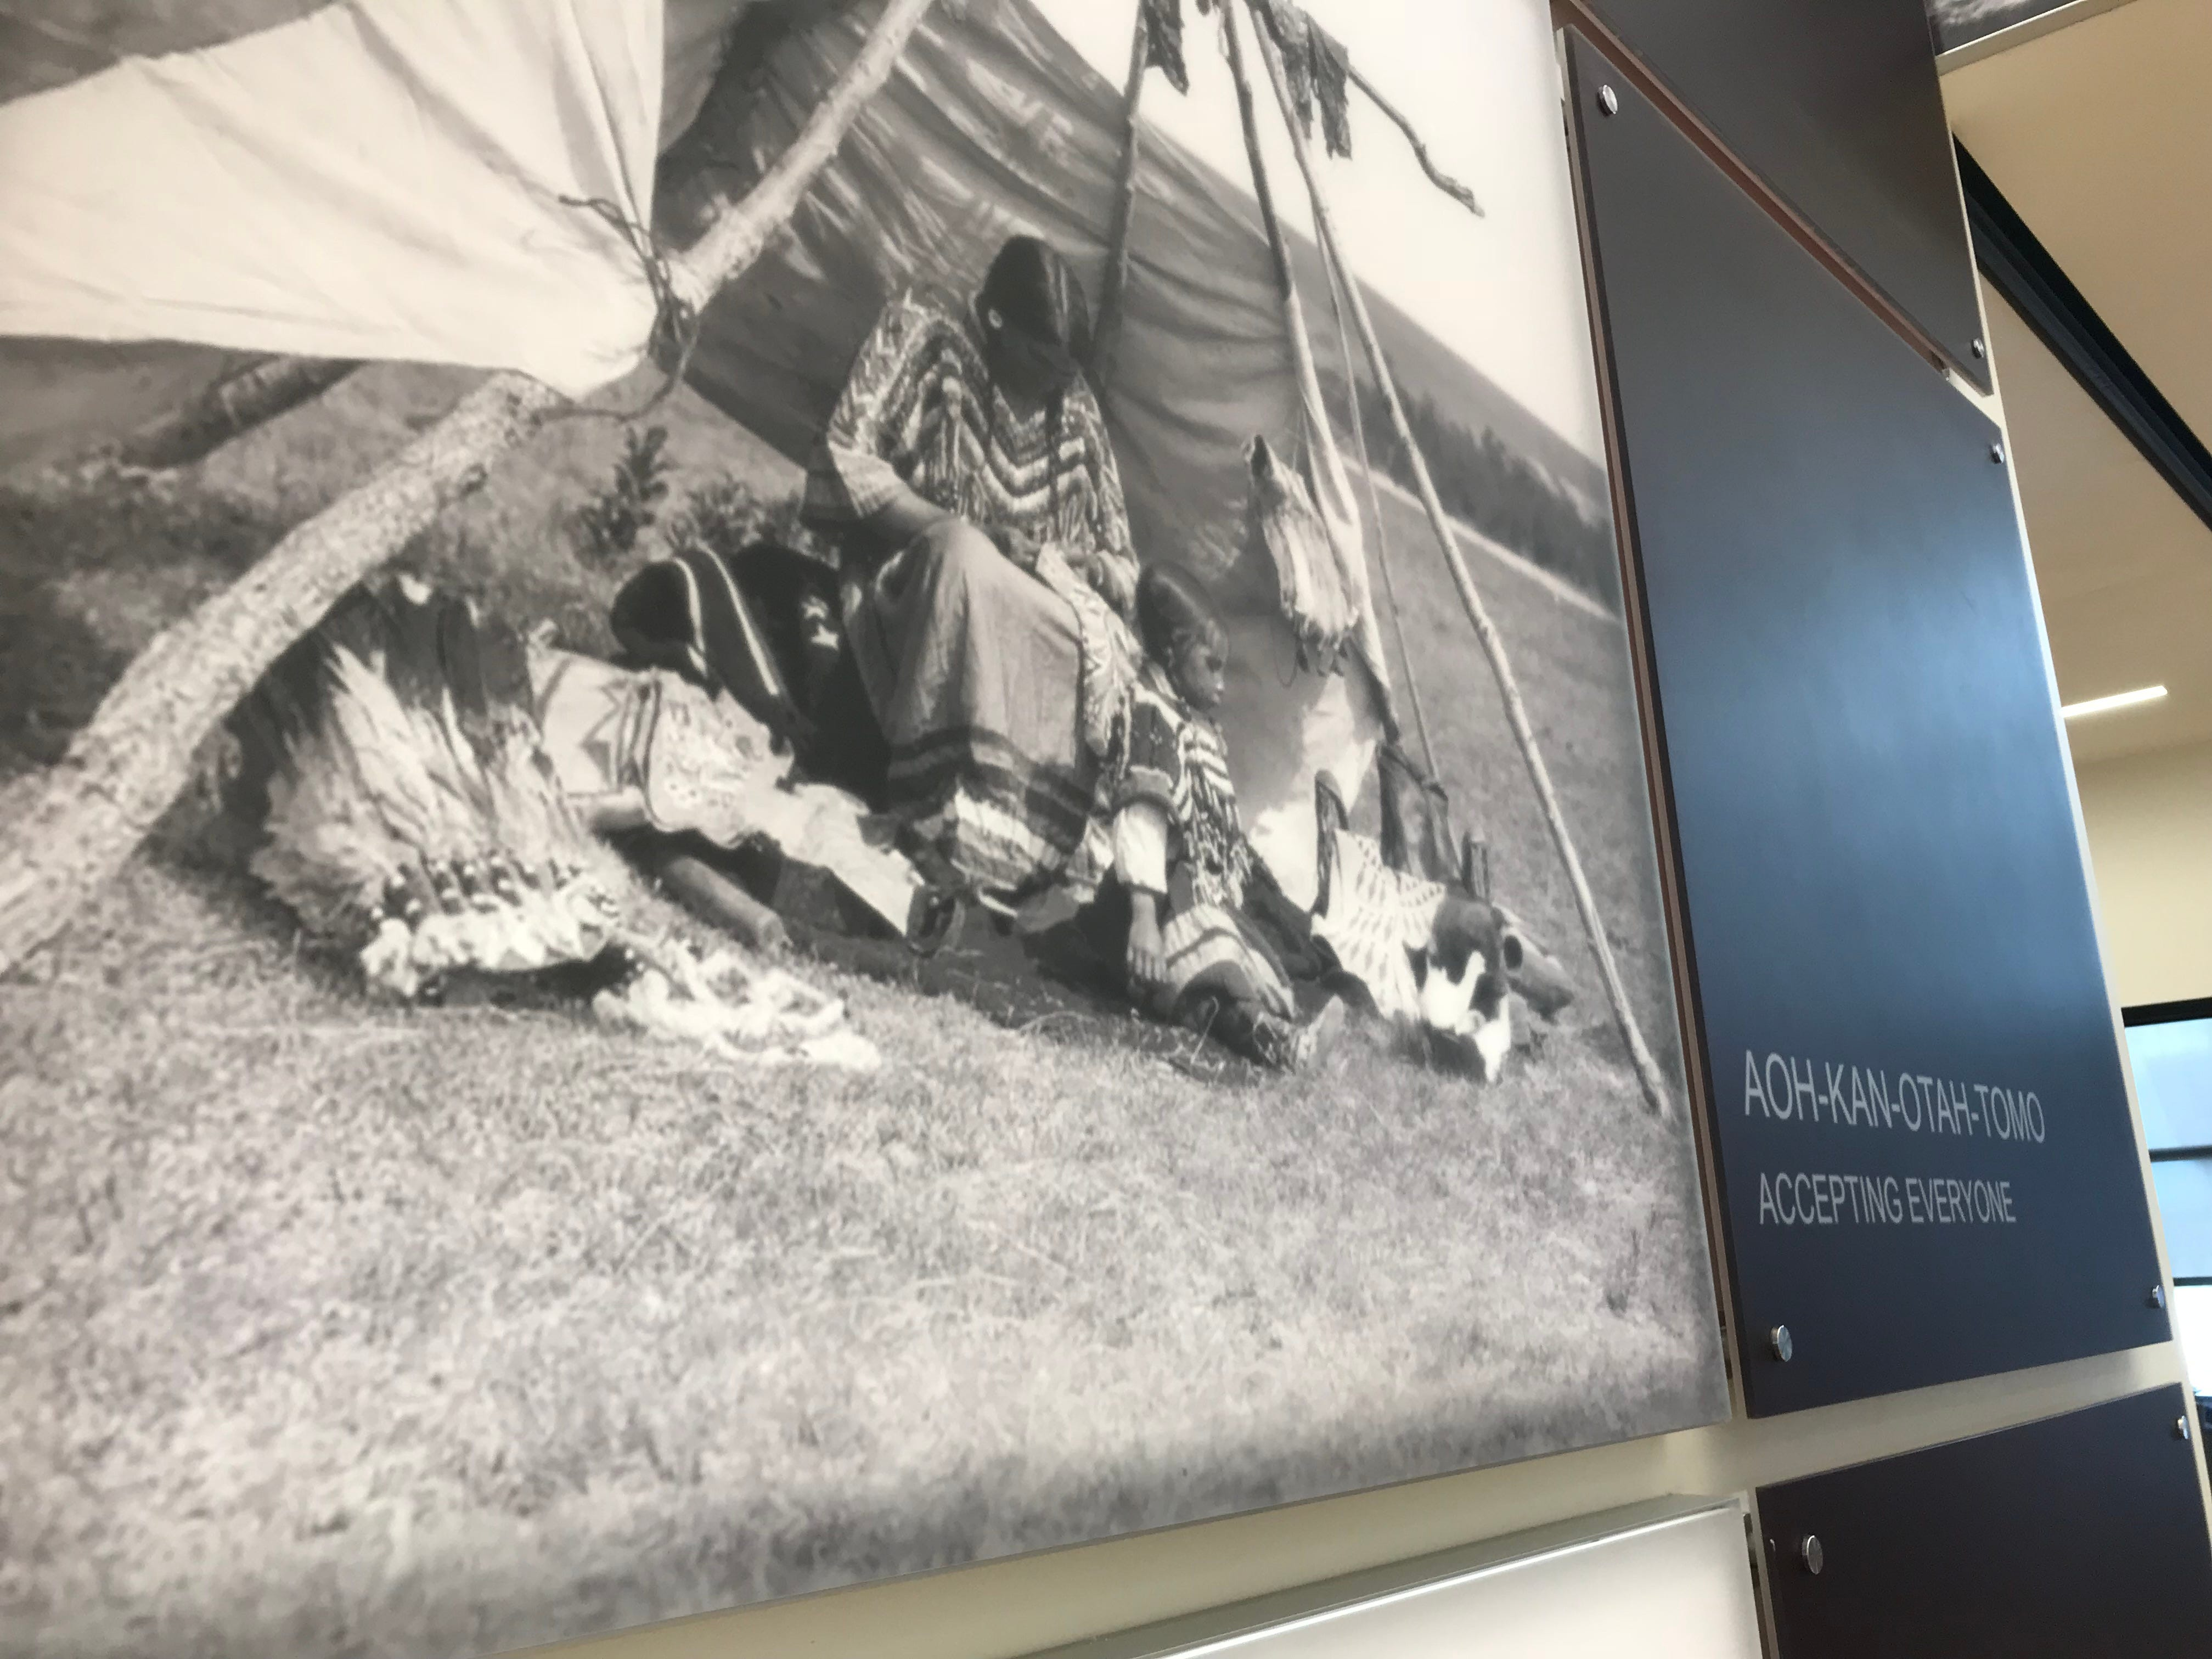 Photos and Blackfeet phrases are used in the decor of the new Blackfeet Community College building named Oahtkwii Piiksakii Iikohkon-Yellow Bird Woman Lodge in honor of Elouise Cobell, a Blackfeet tribal elder, banker and rancher and Presidential Medal of Freedom winner.